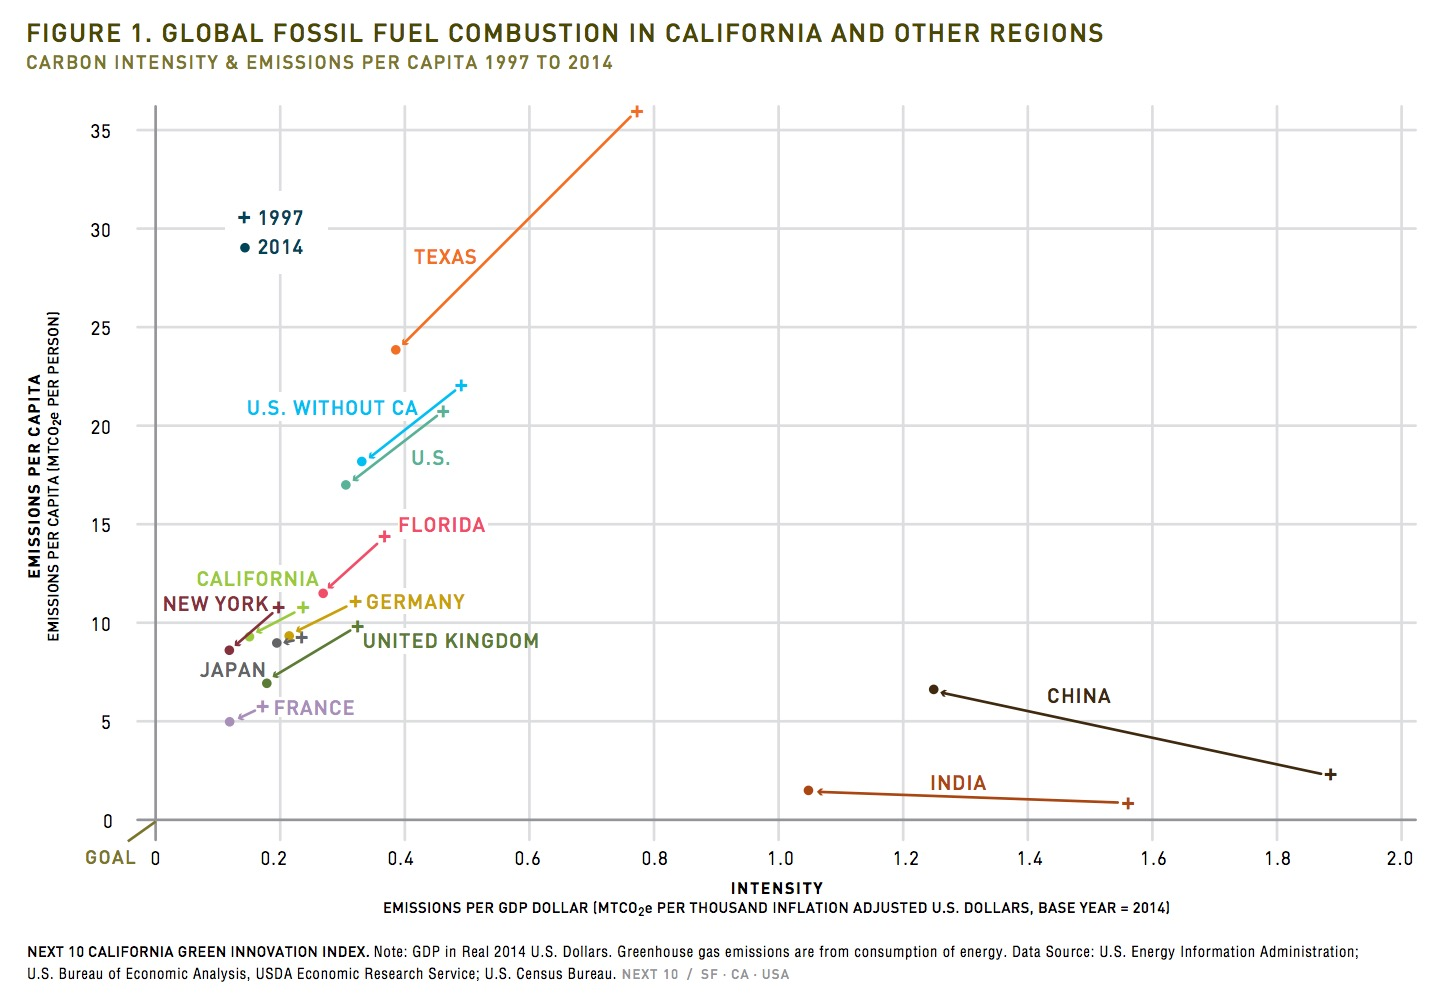 FIGURE 1. GLOBAL FOSSIL FUEL COMBUSTION IN CALIFORNIA AND OTHER REGIONS